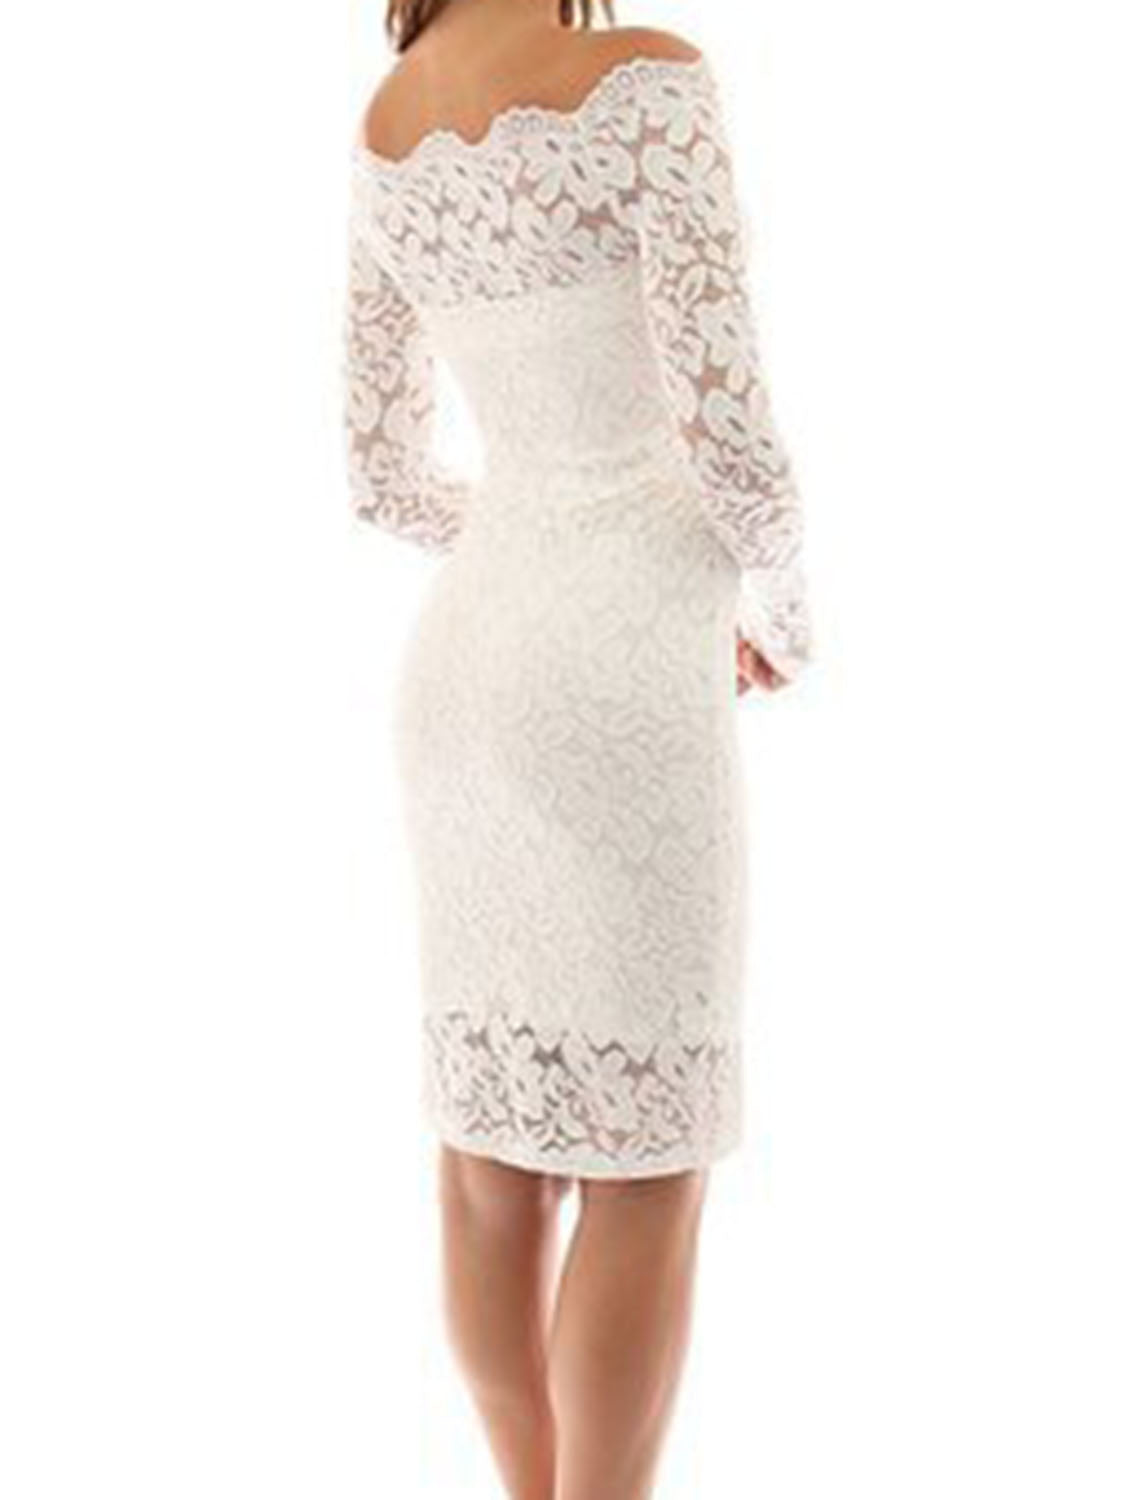 White Off Shoulder Long Sleeve Women Lace Bodycon Dress